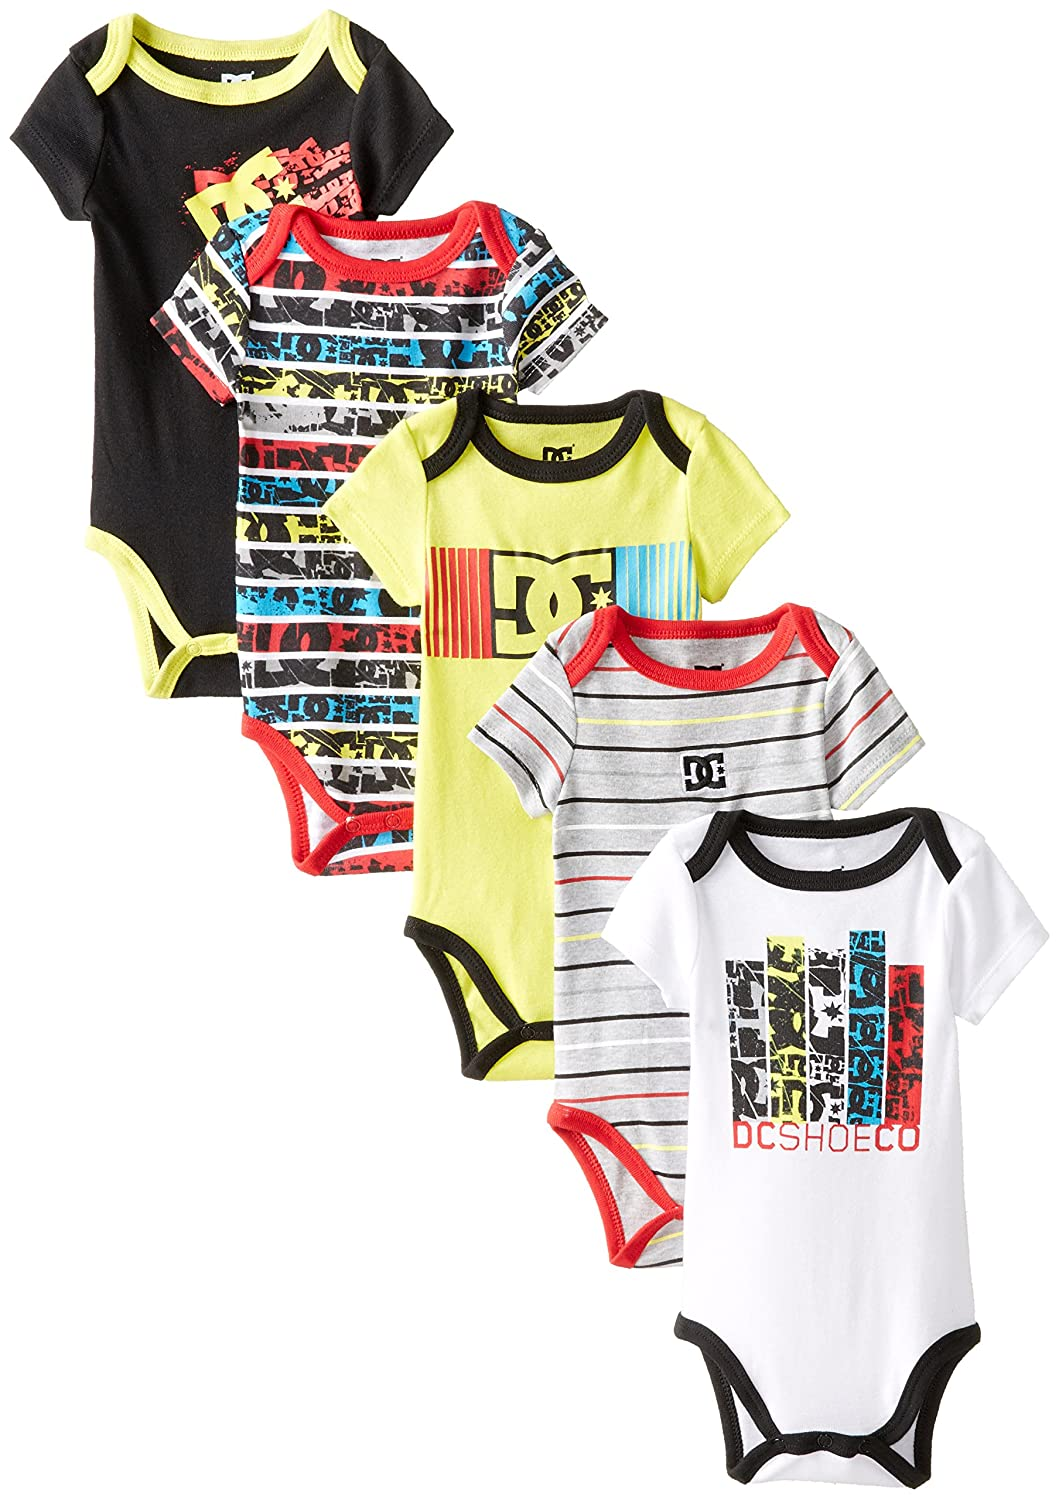 DC Shoes Co Baby-Boys Newborn 5 Pack